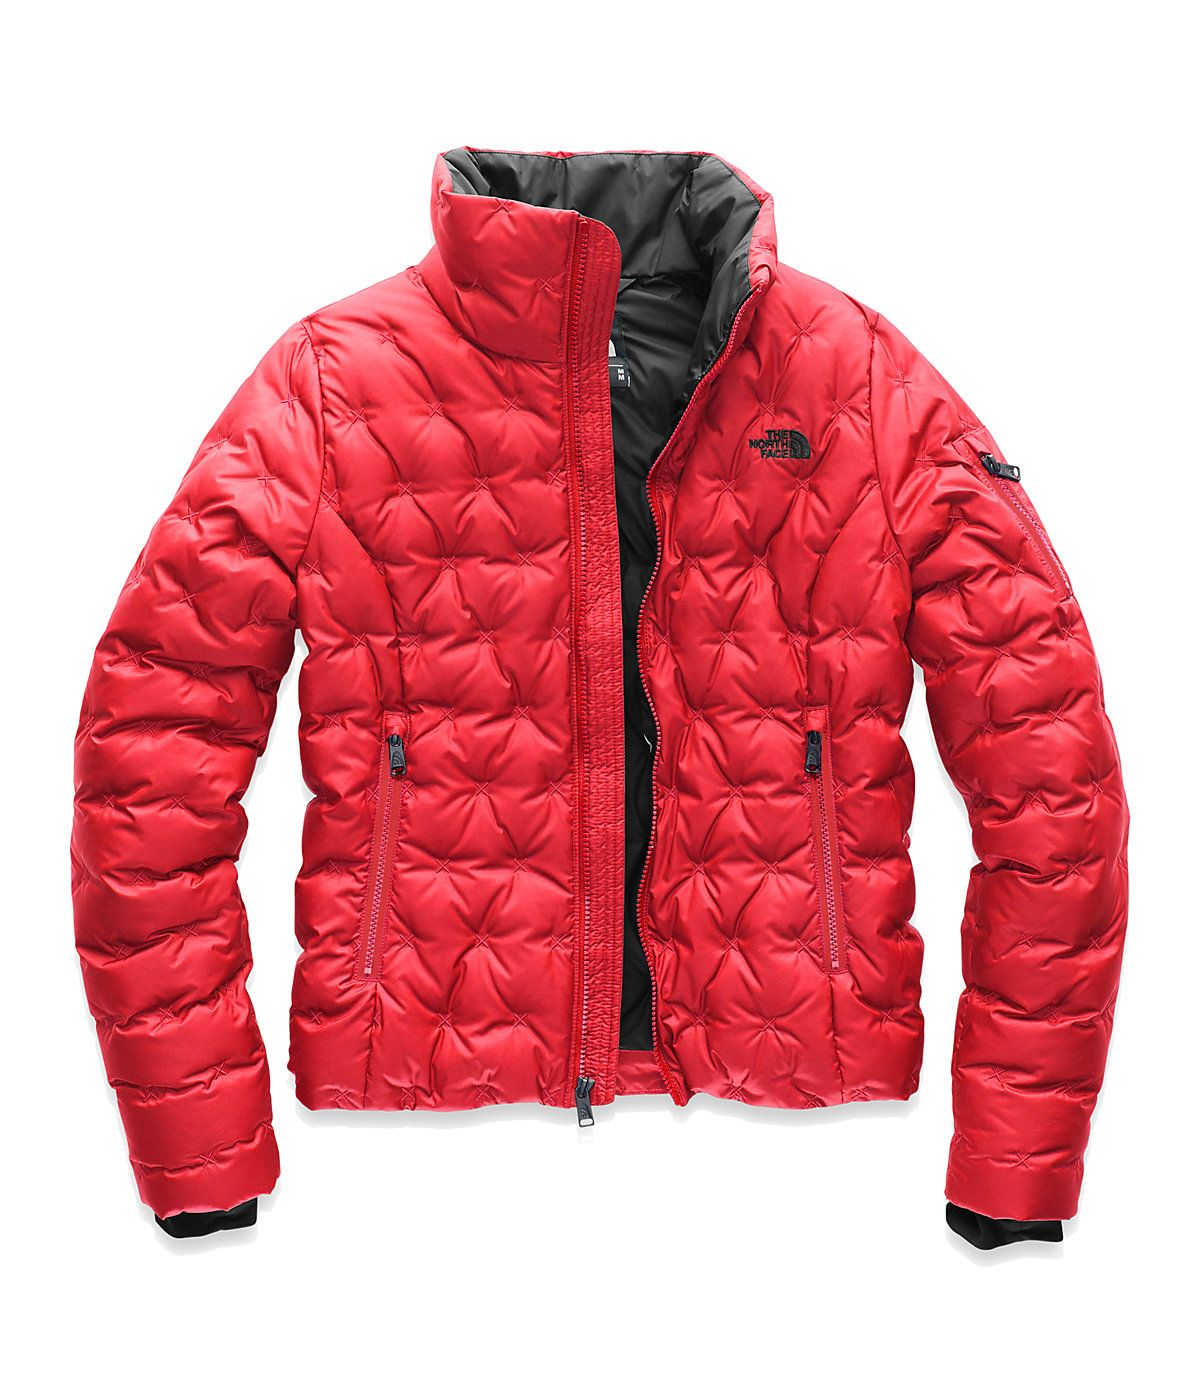 Women S Holladown Crop Jacket The North Face In 2021 Red North Face Jacket Crop Jacket Jackets [ 1396 x 1200 Pixel ]